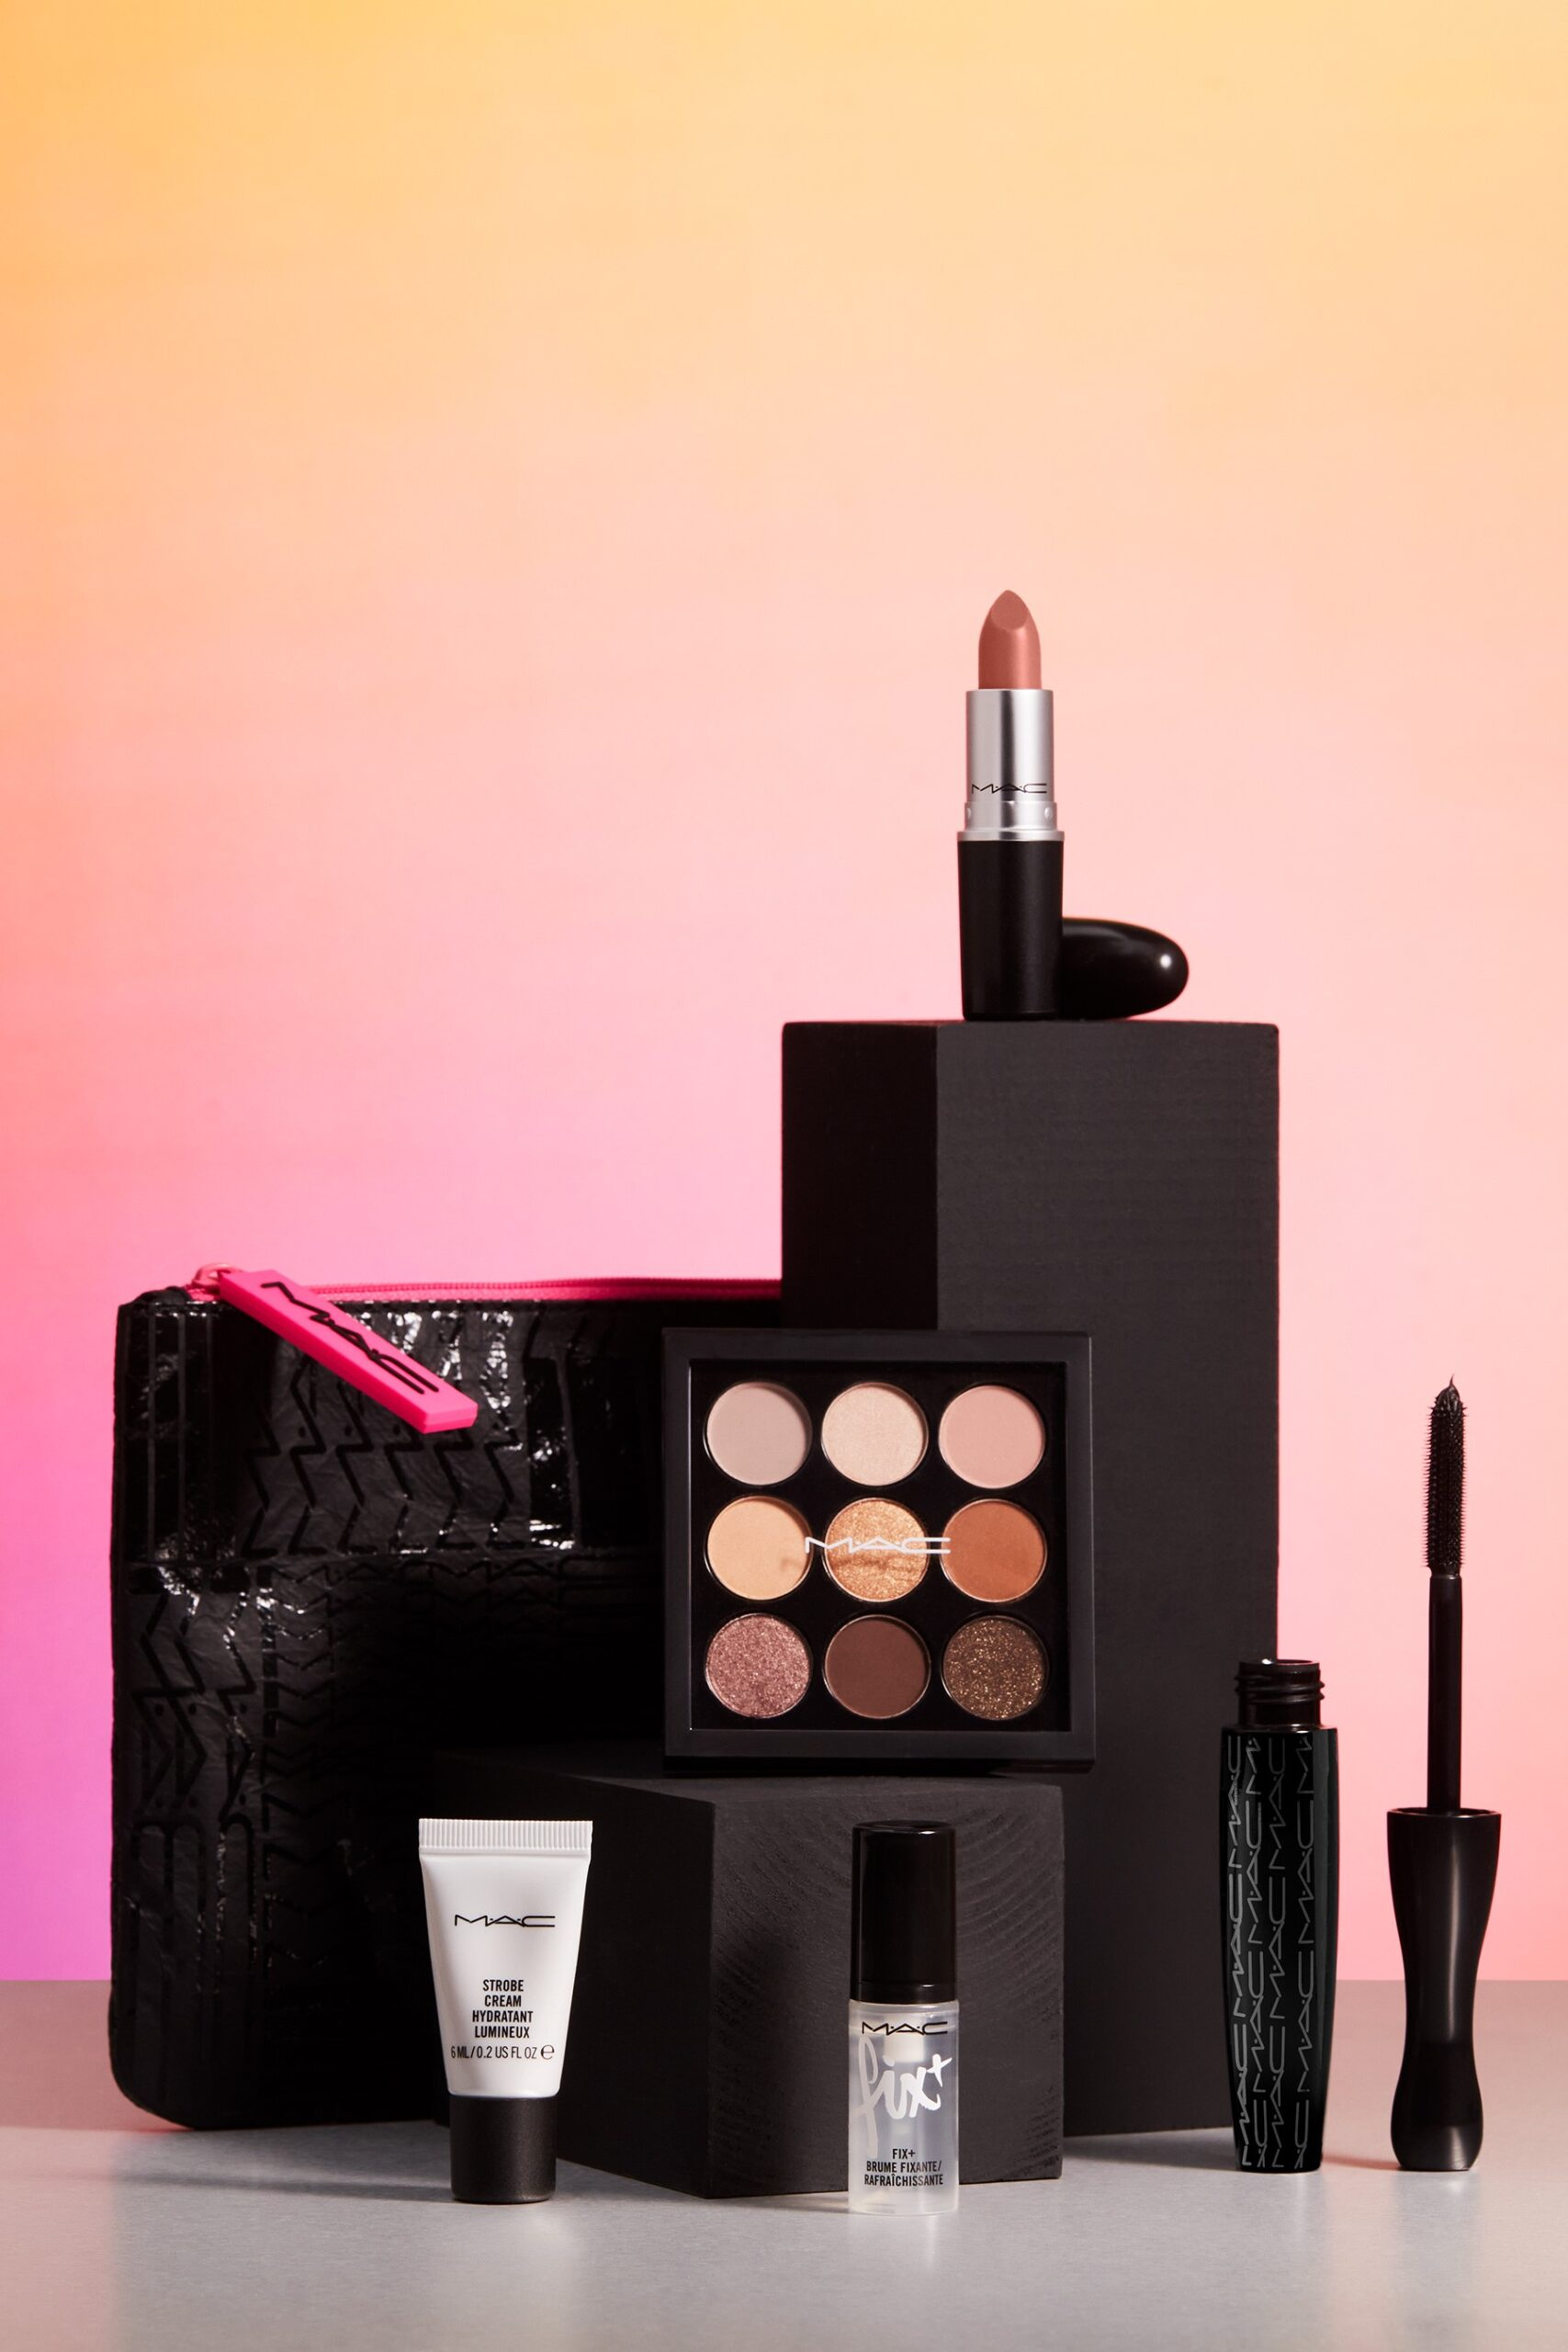 Next Beauty x MAC The Beauty Heroes Box Contents Reveal!